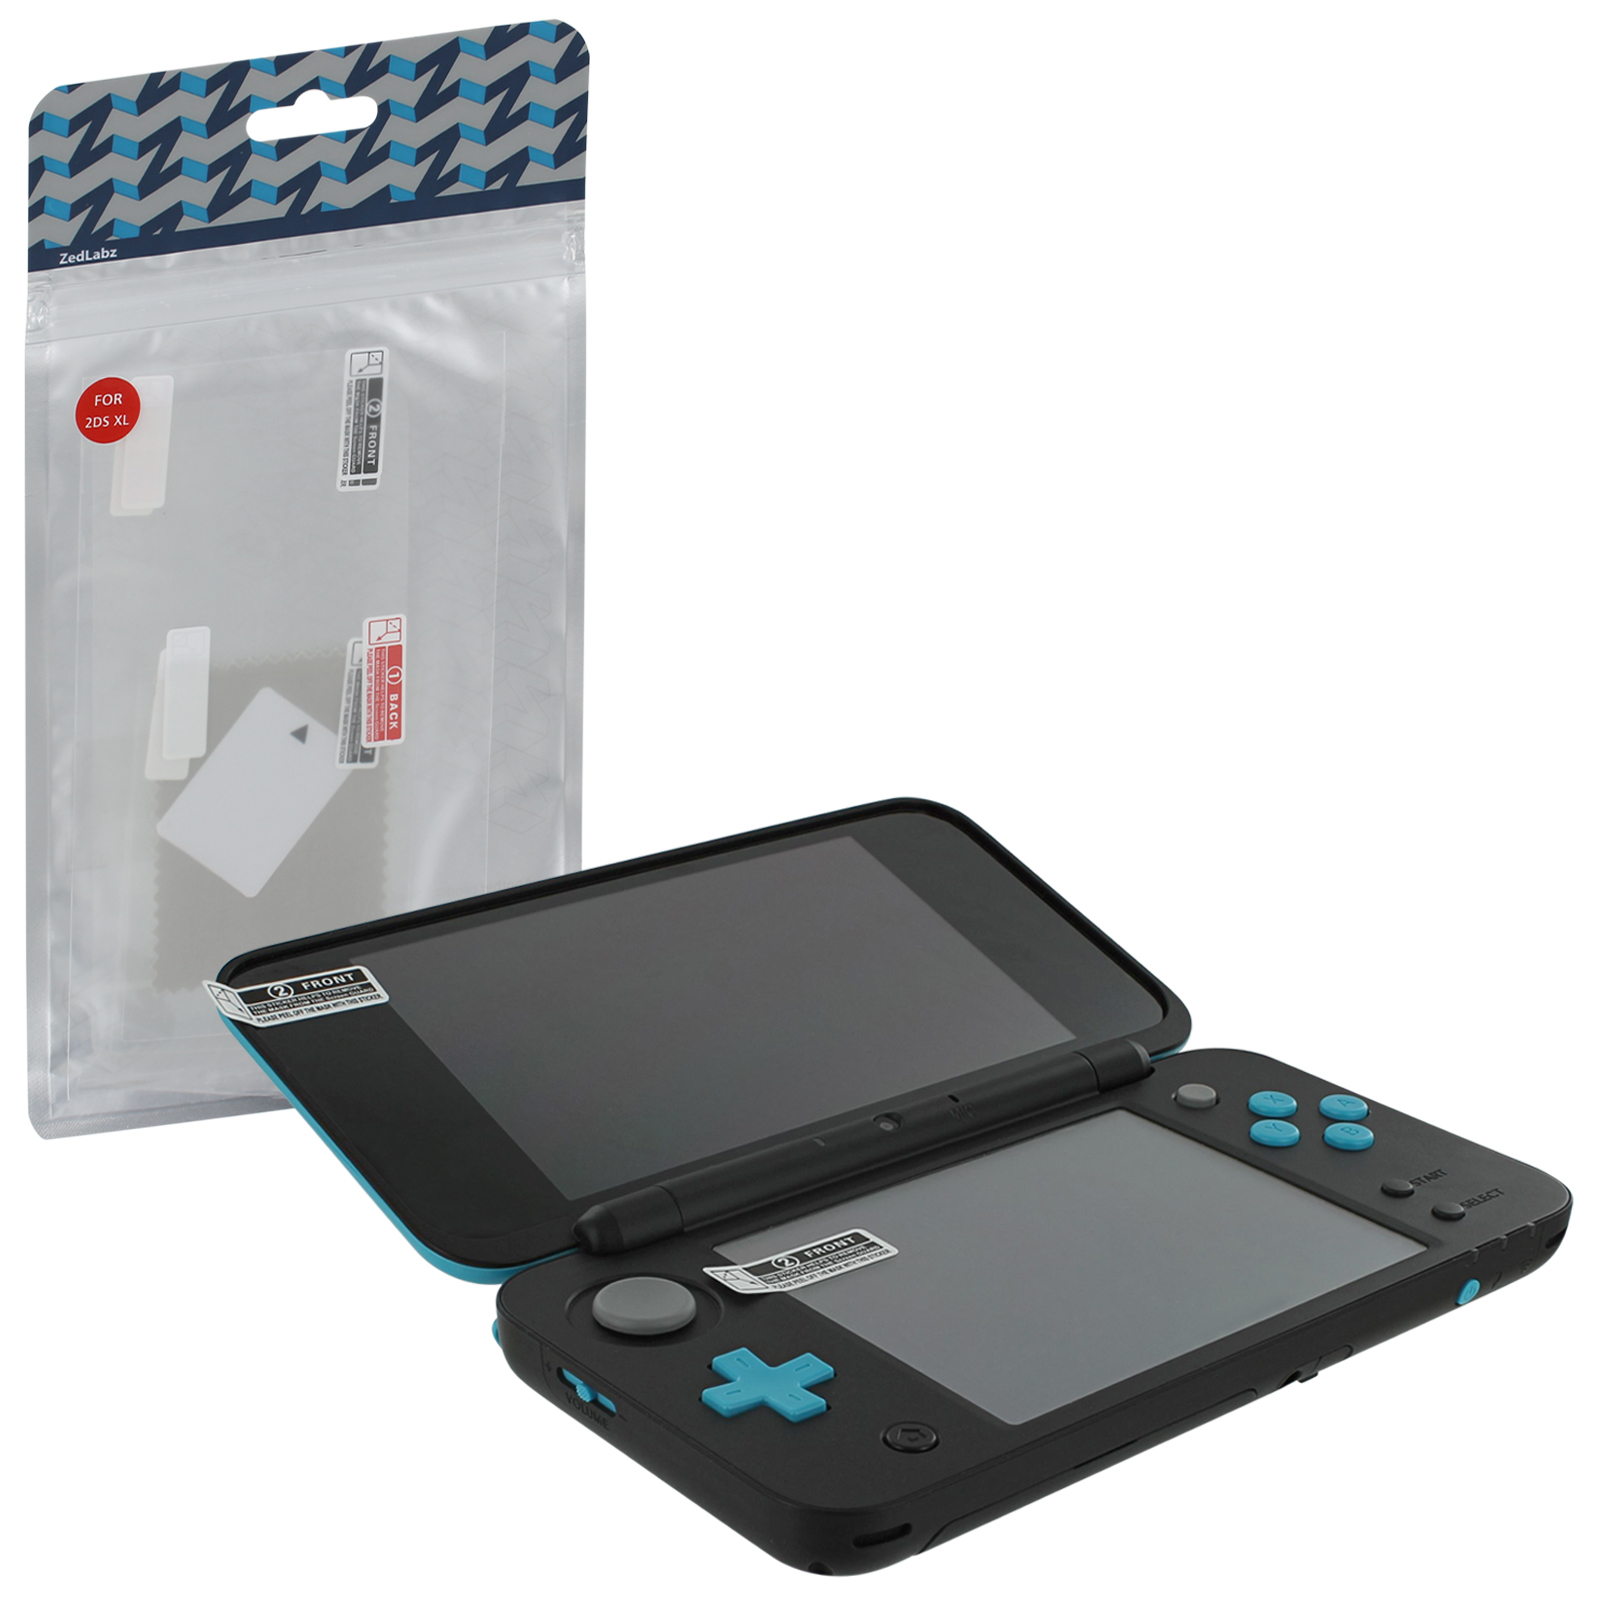 Zedlabz Ultra Clear Screen Protector Film Guard Set For Nintendo 2ds Xl Top & Bottom - 4 Pack